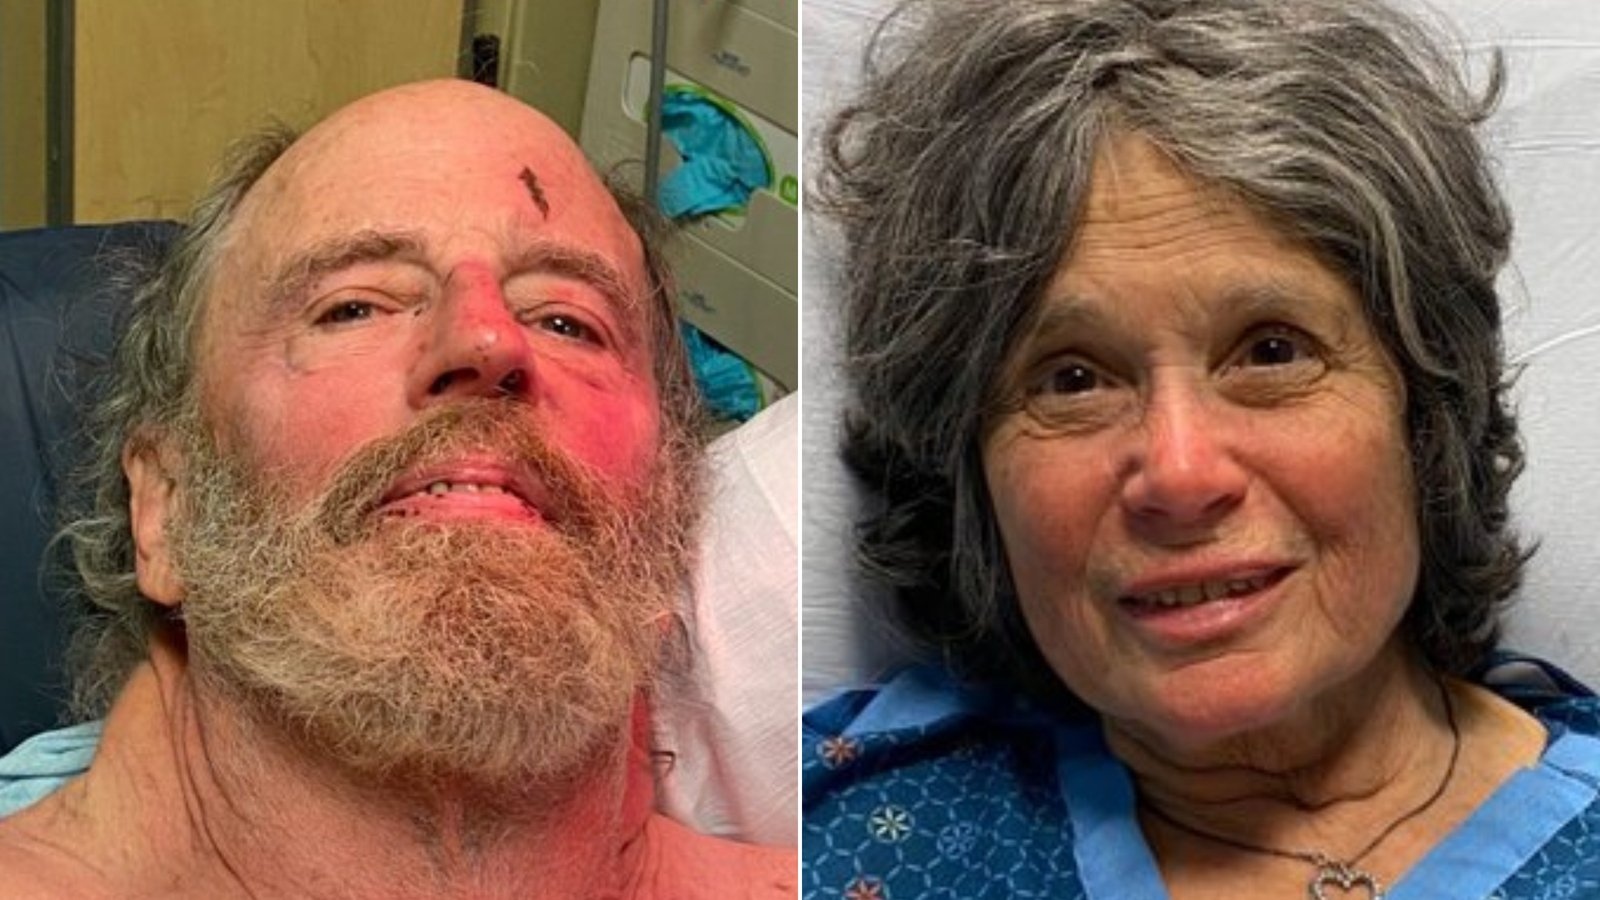 Ian Irwin, left, and Carol Kiparsky are seen recovering in a hospital in a photo released Feb. 23, 2020, by the Marin County Sheriff's Office.